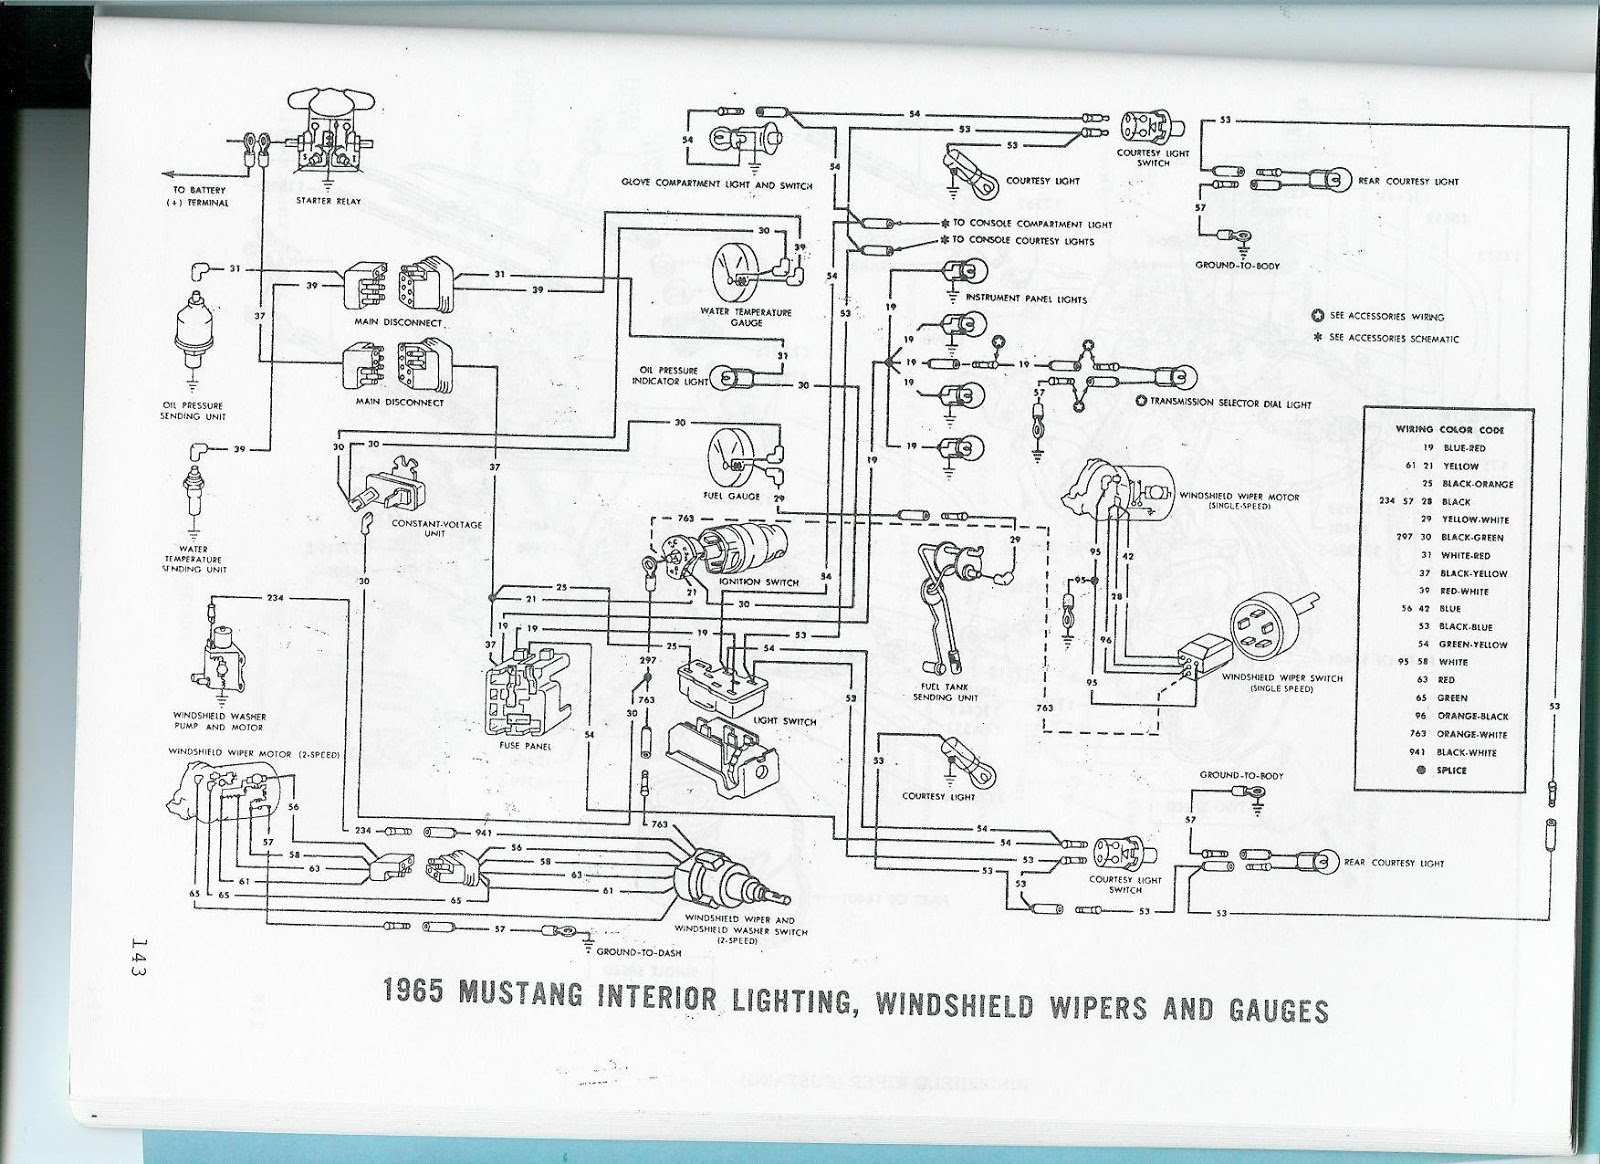 66 Chevelle Wiring Diagram Just Another Blog Engine 1964 Mustang Fuse Box Library Rh 32 Akszer Eu